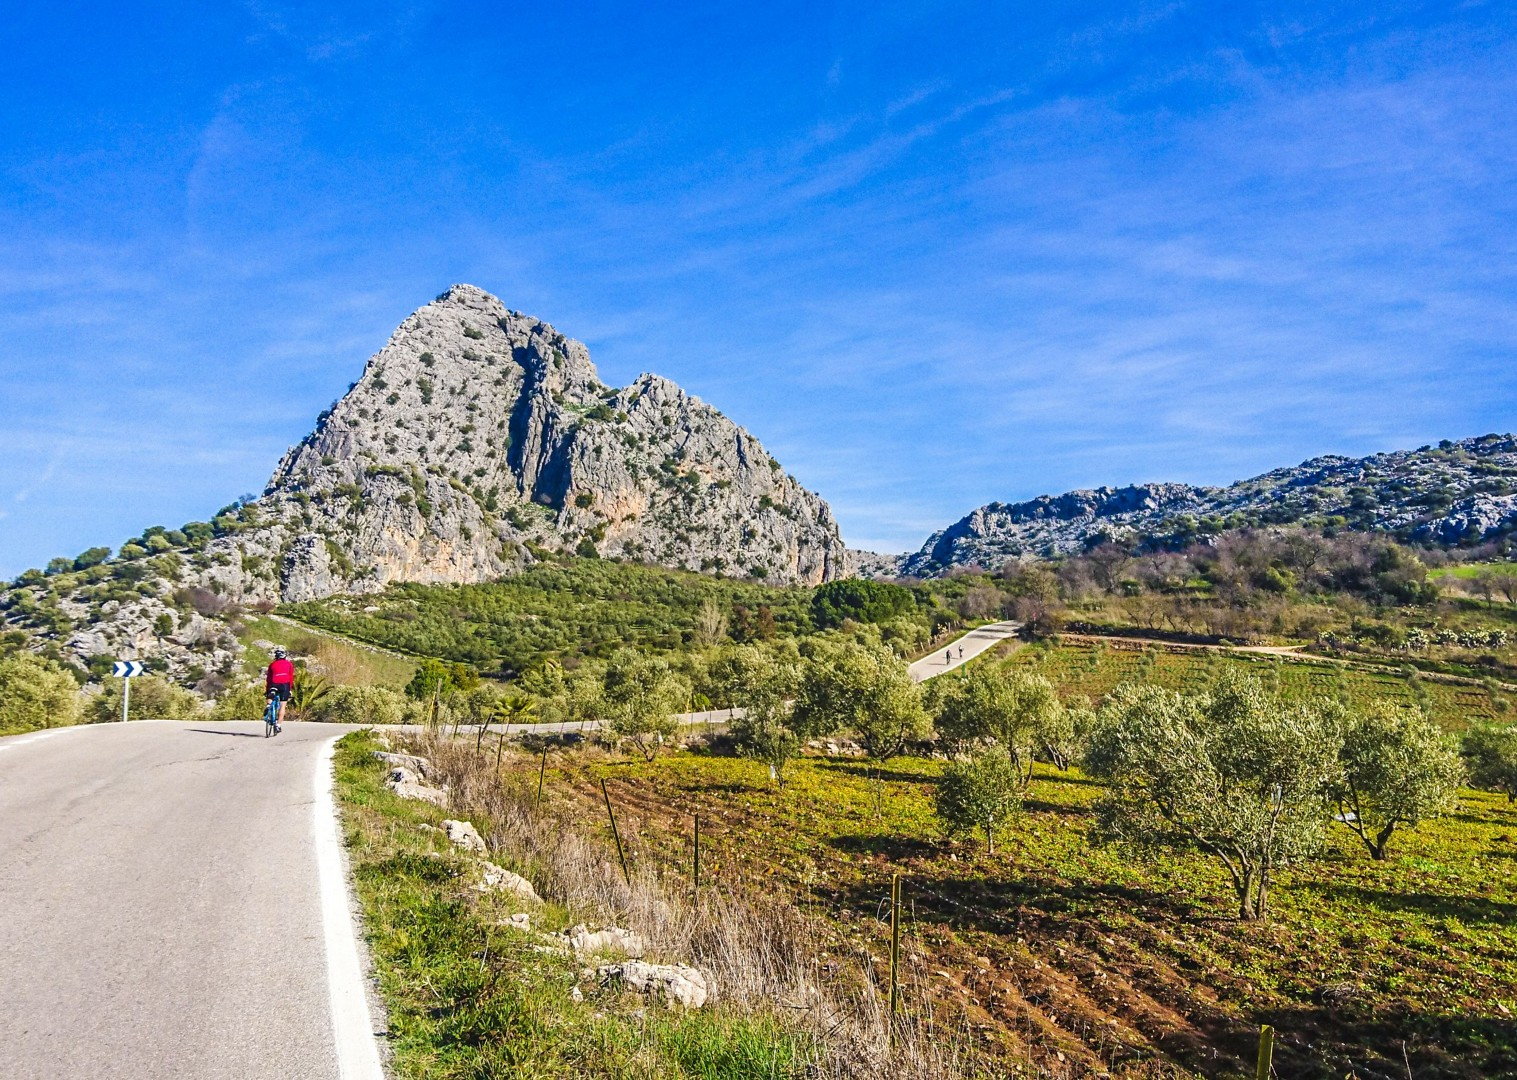 limestone-mountain-backgrounds-road-cycling-tour-spain.jpg - Southern Spain - Andalucia - Los Pueblos Blancos - Self-Guided Road Cycling Holiday - Road Cycling